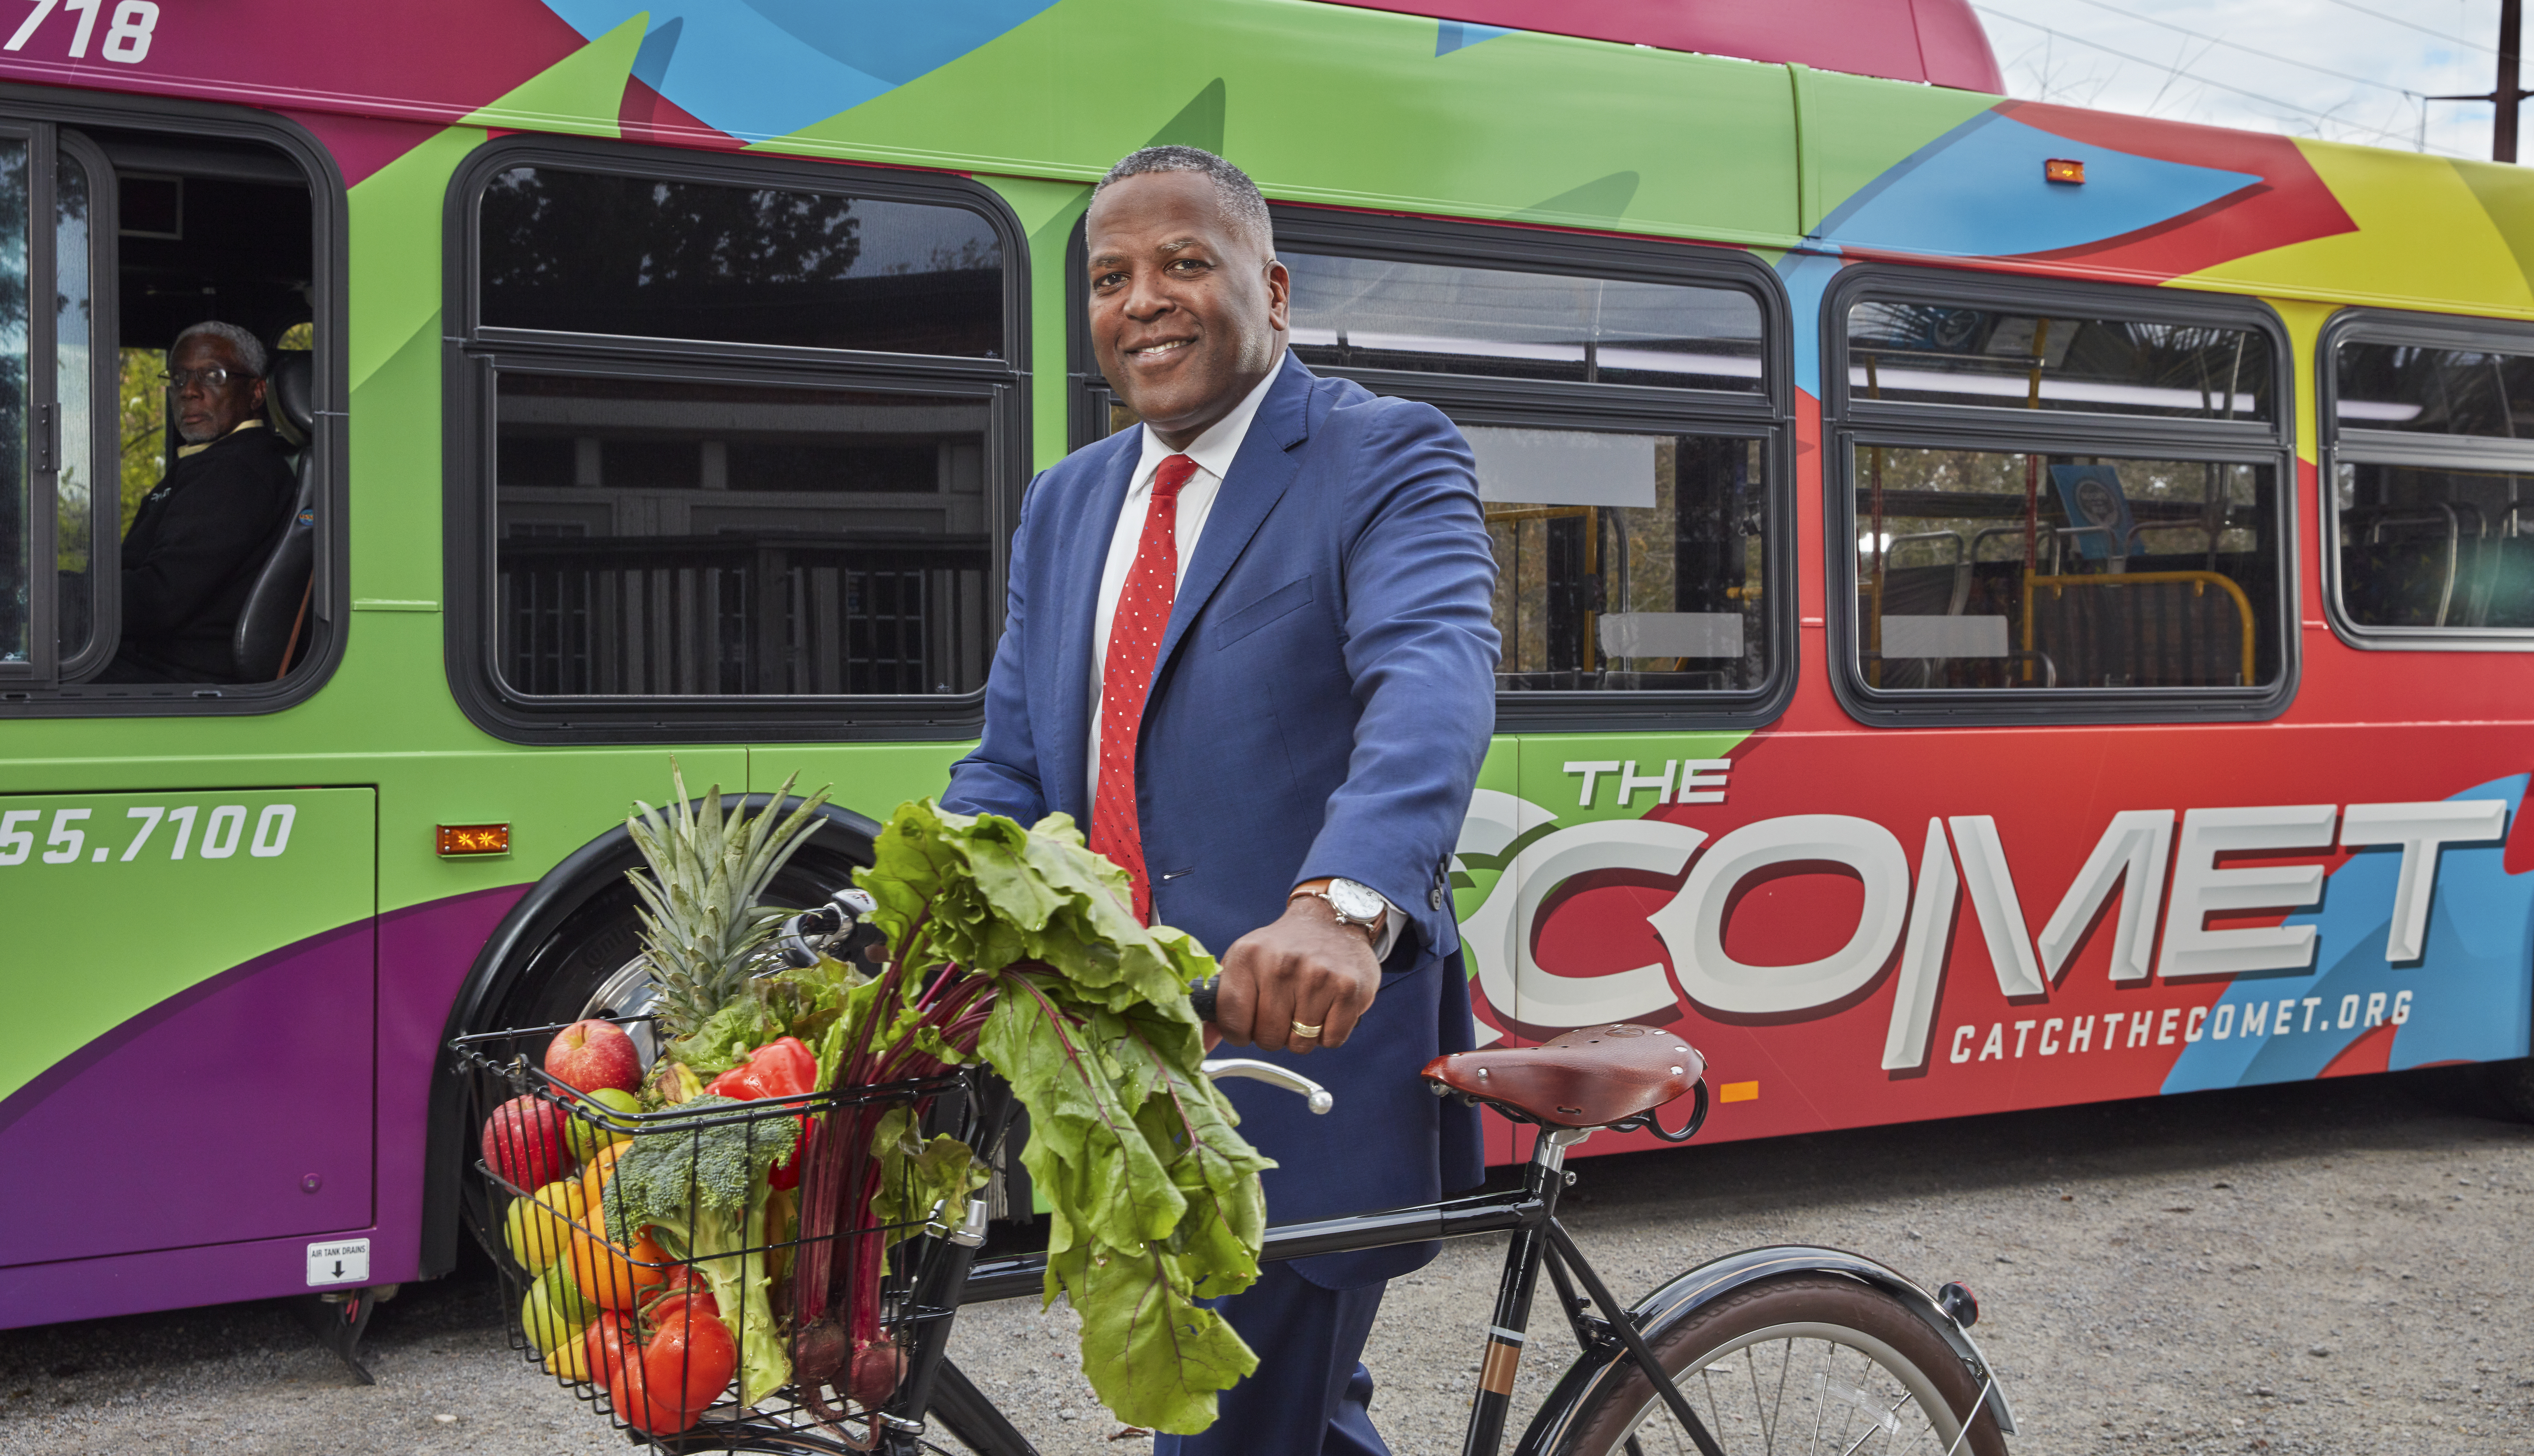 columbia south carolina mayor steve benjamin poses with a bicycle in front of a city bus